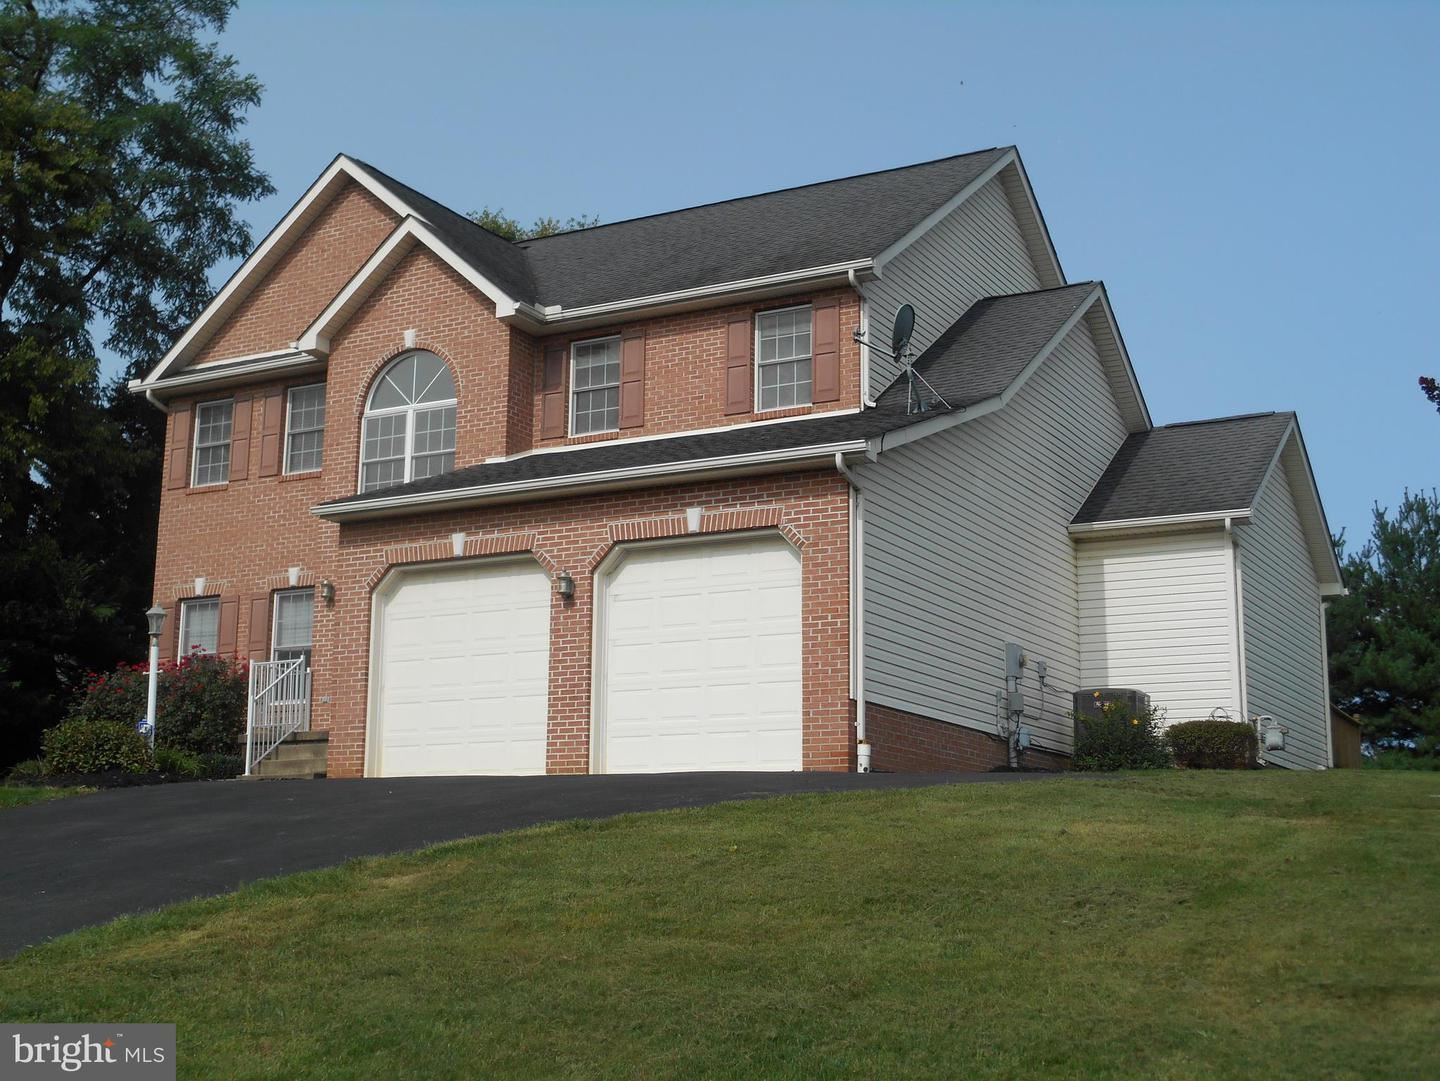 Photo of 501 FAIR MEADOWS BLVD, HAGERSTOWN, MD 21740 (MLS # MDWA174644)